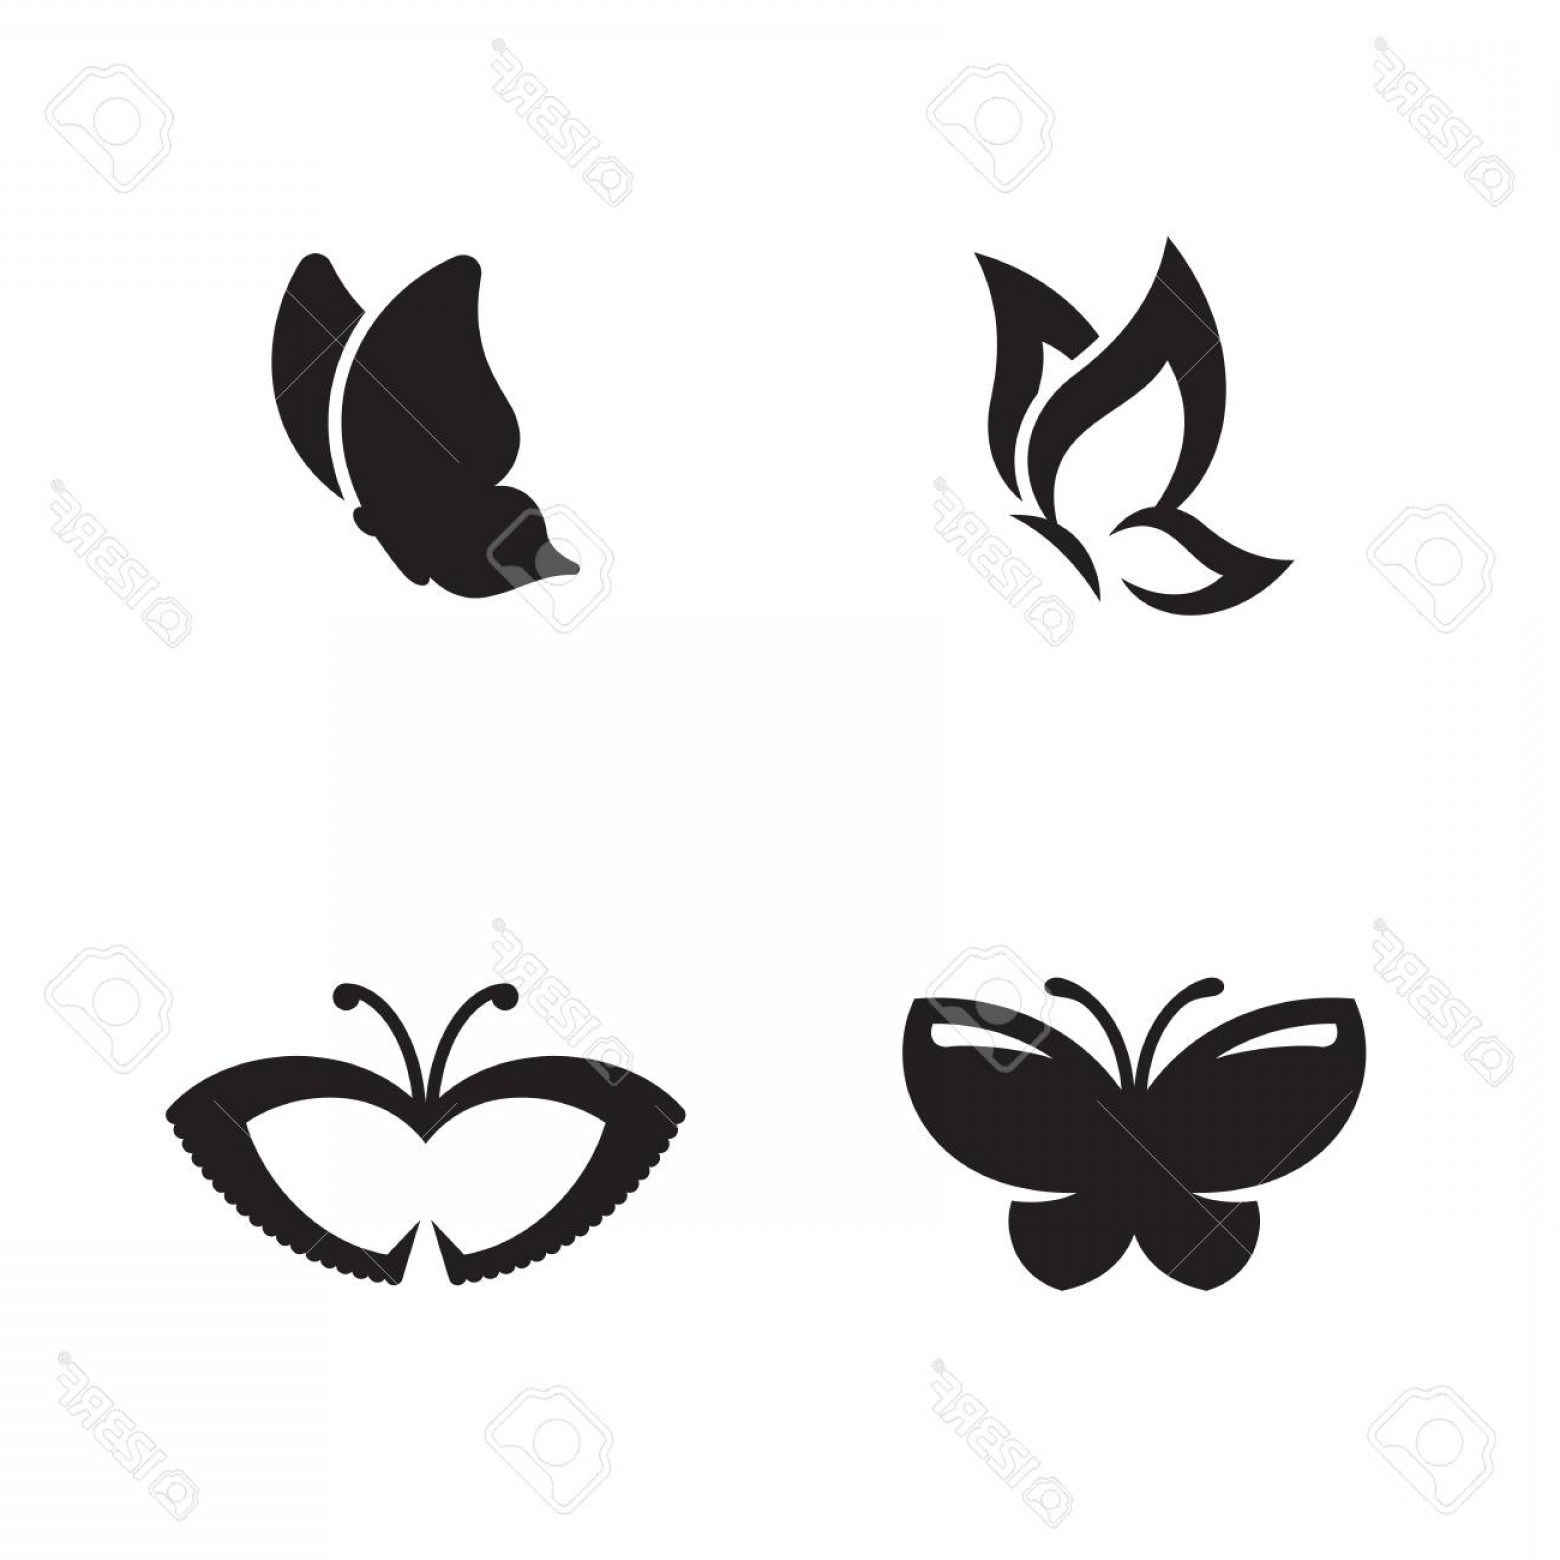 Butterfly Vector Logo: Photostock Vector Butterfly Vector Logo Black Icons On A White Background